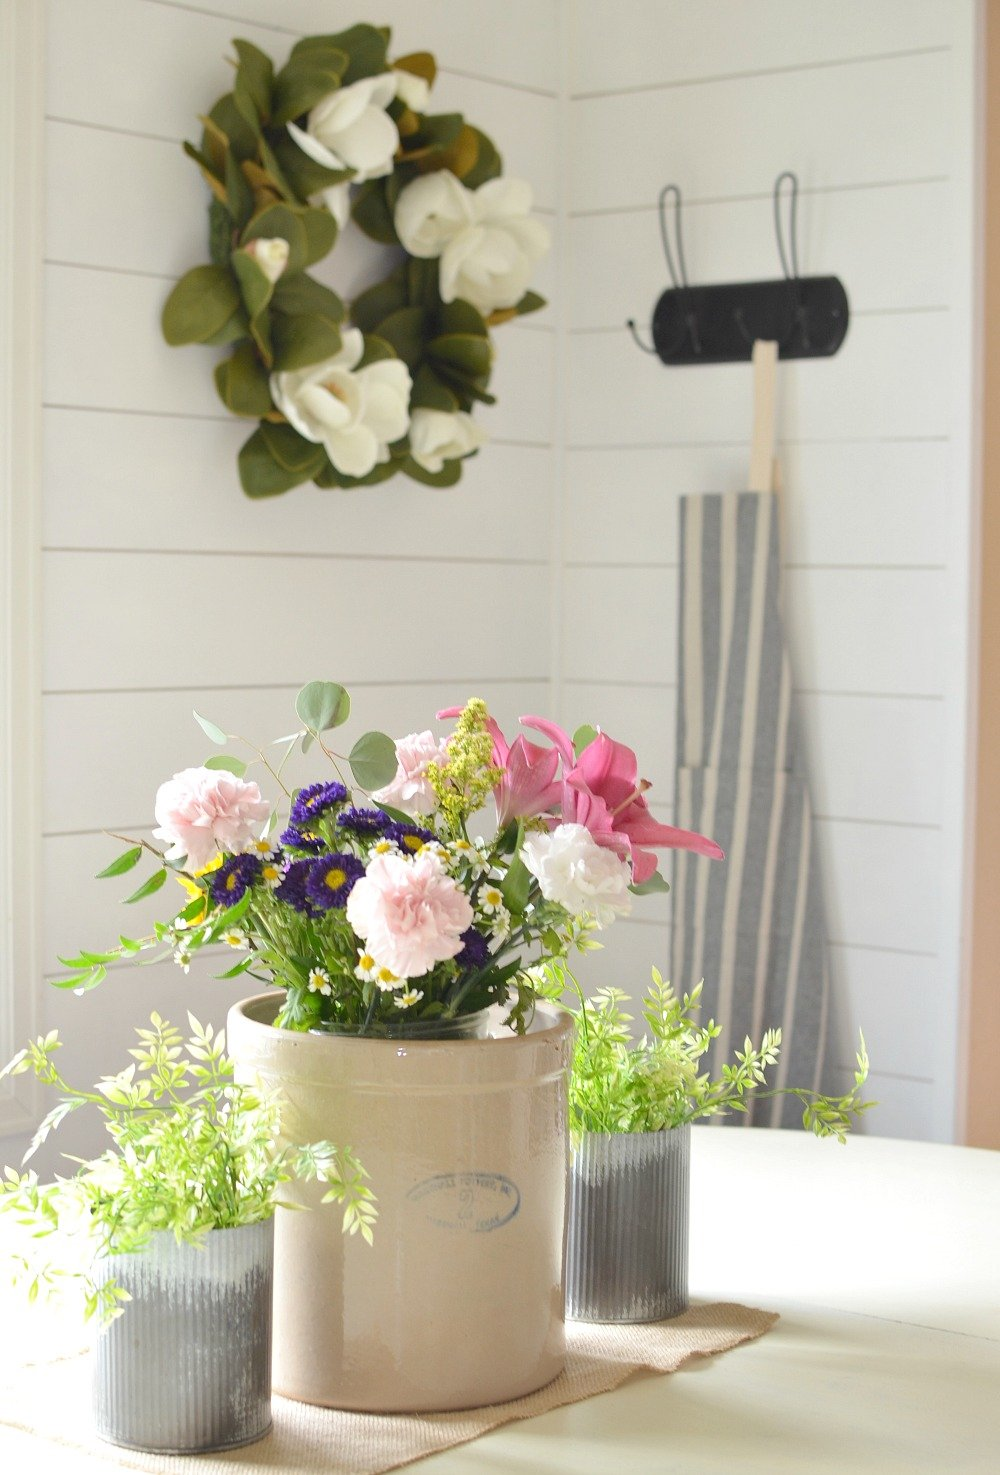 How to Get Farmhouse Style In Your Home. Simple ideas to create a cozy farmhouse feel.